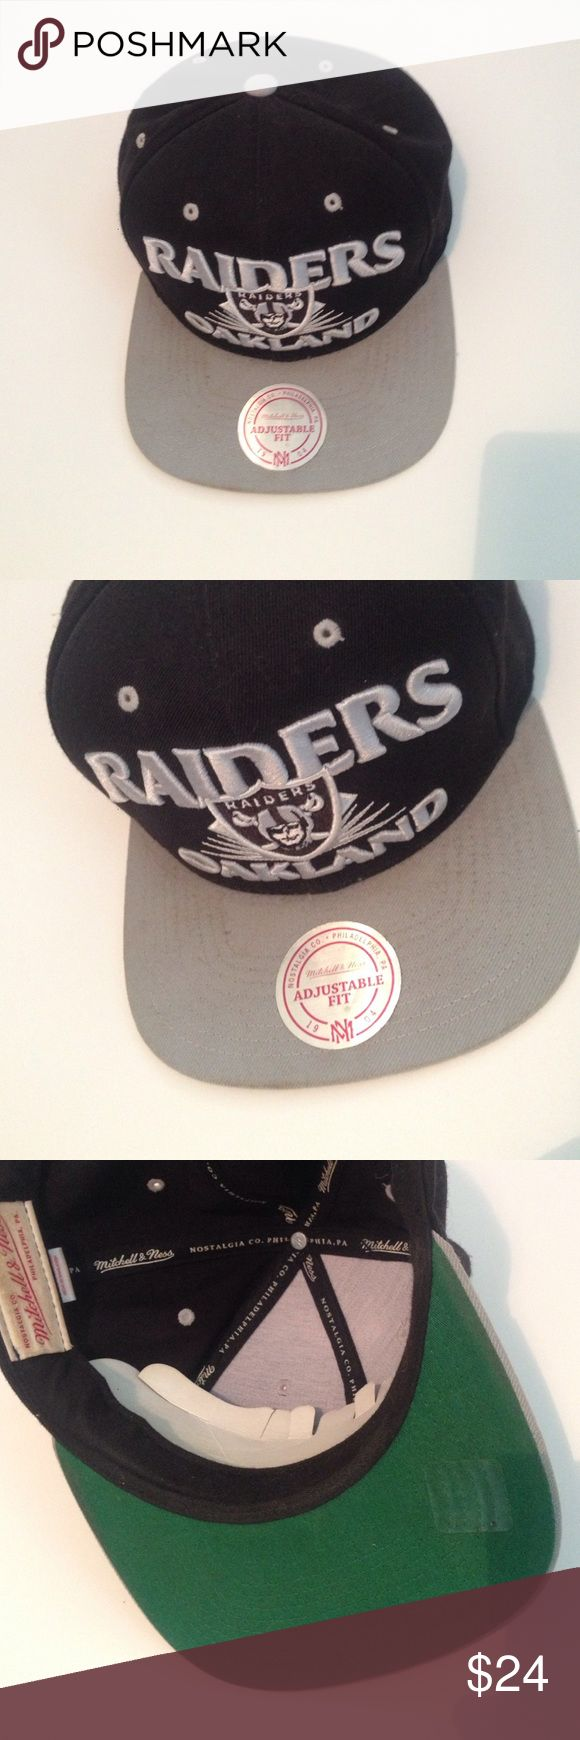 Oakland Raiders Hat Never Worn , Oakland Raiders Snap Back Mitchell & Ness Accessories Hats